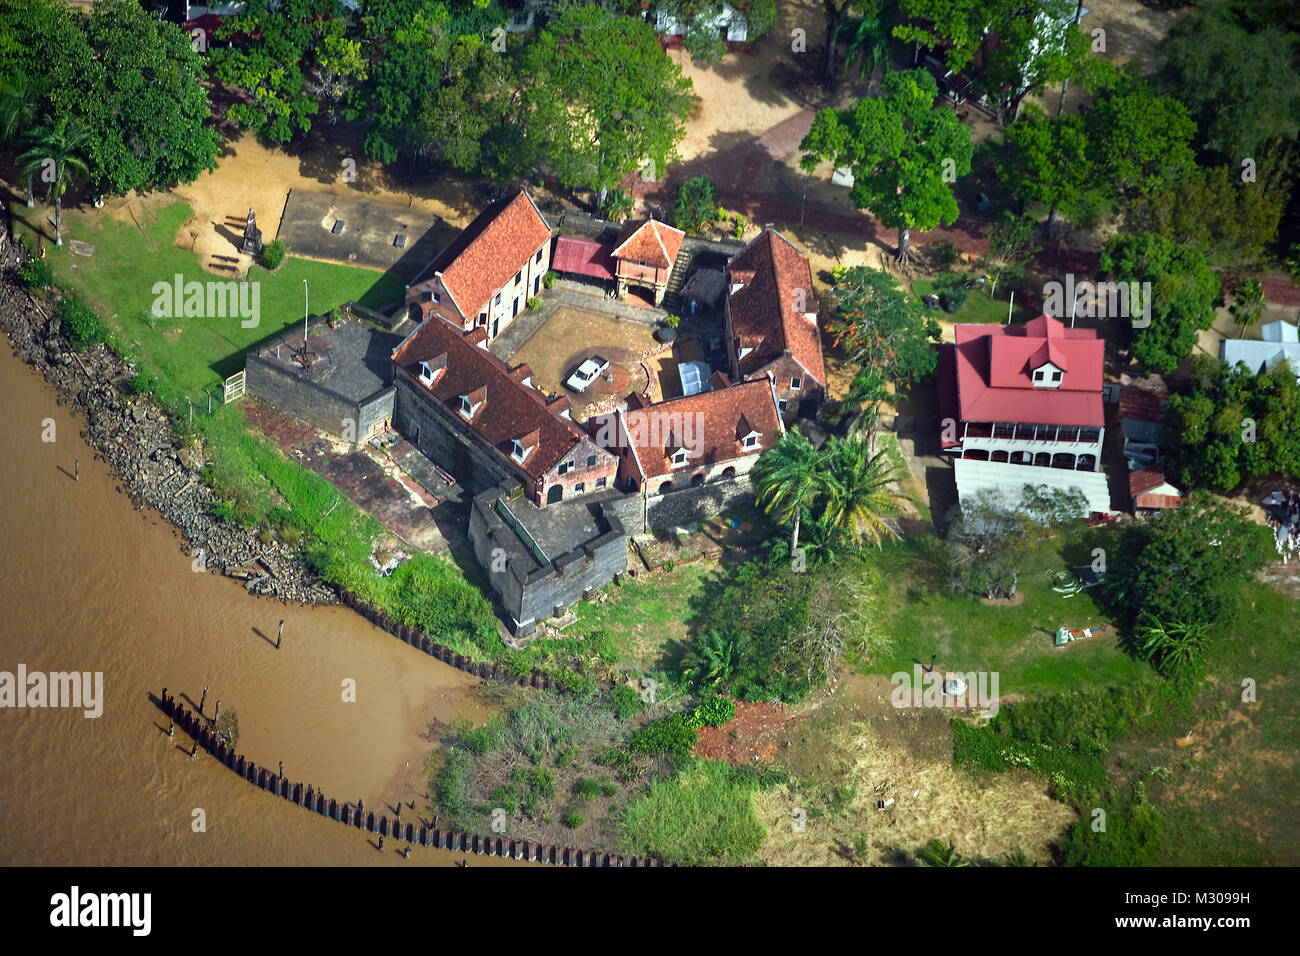 Suriname, Paramaribo, Aerial view old fort called Zeelandia. - Stock Image